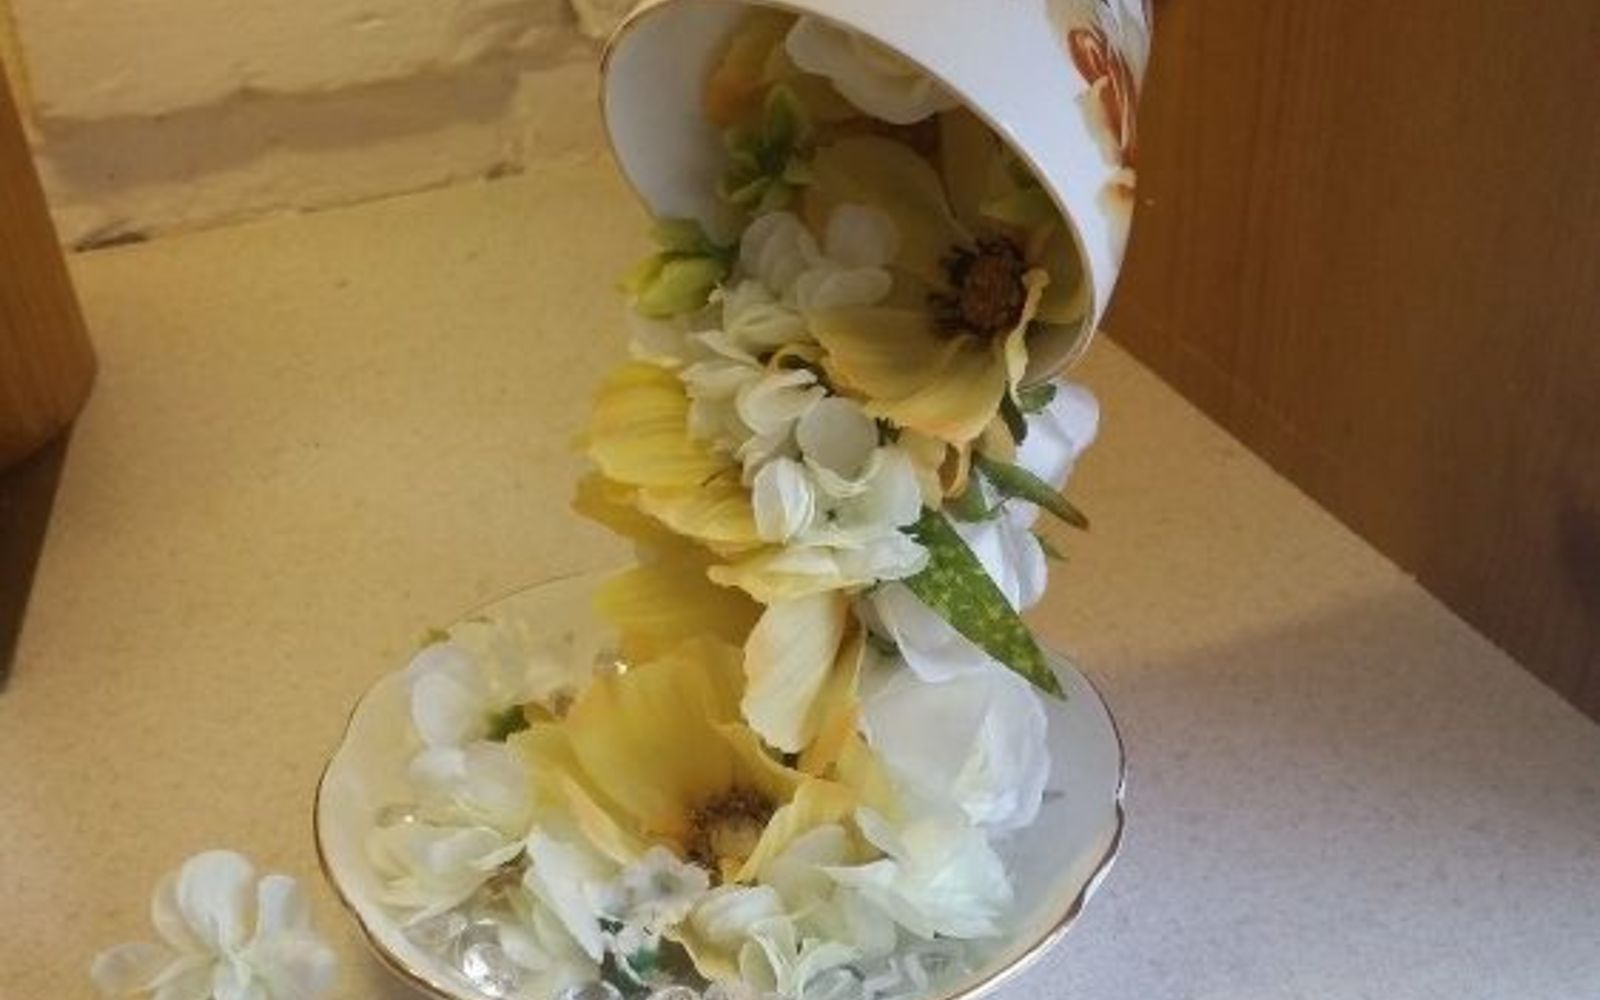 s don t ditch your broken teacups til you see what people do with them, repurposing upcycling, Make a flower fountain with a flipped cup